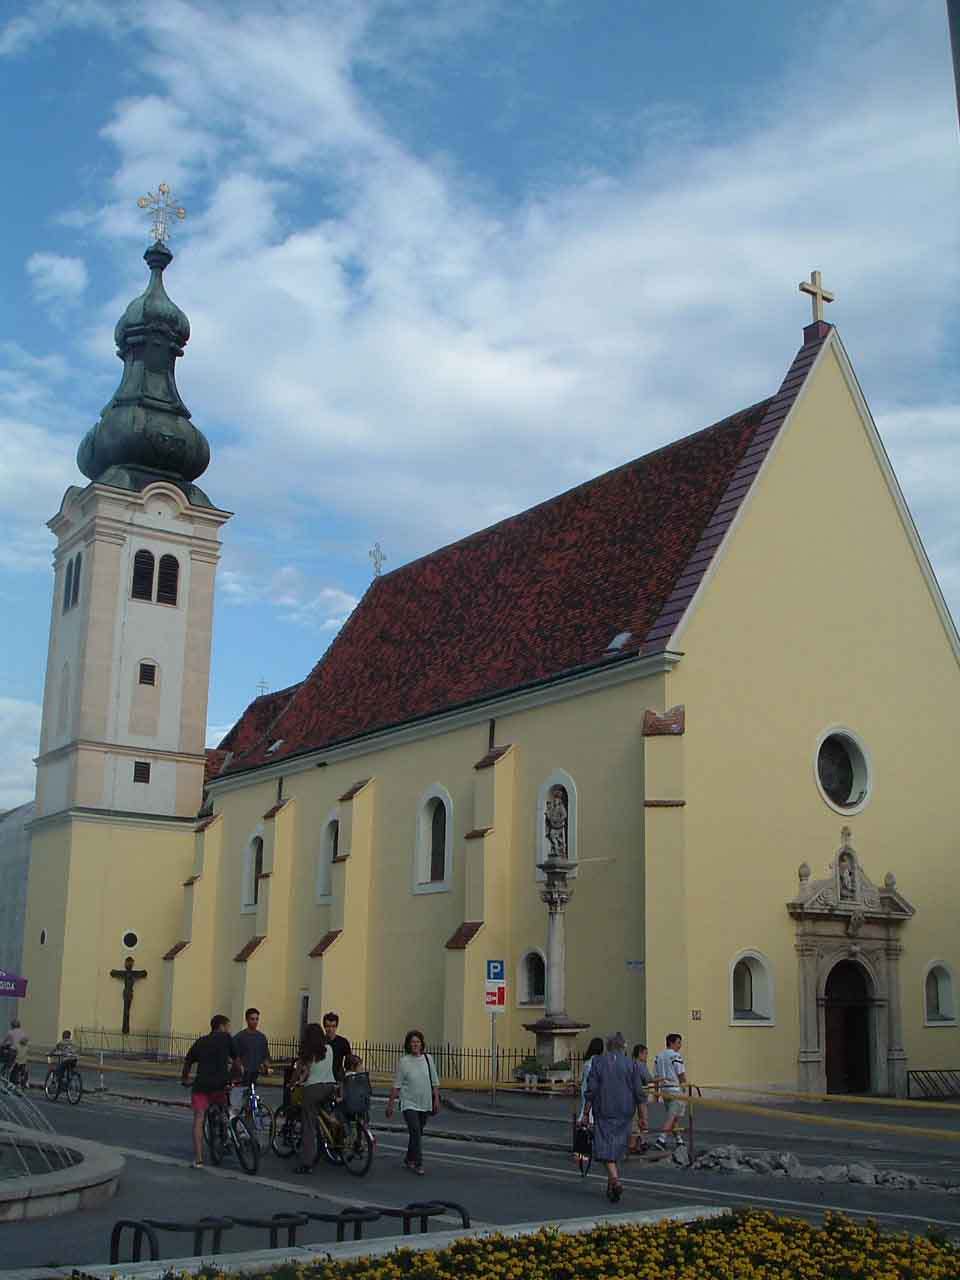 szombathely  u2013 travel guide at wikivoyage